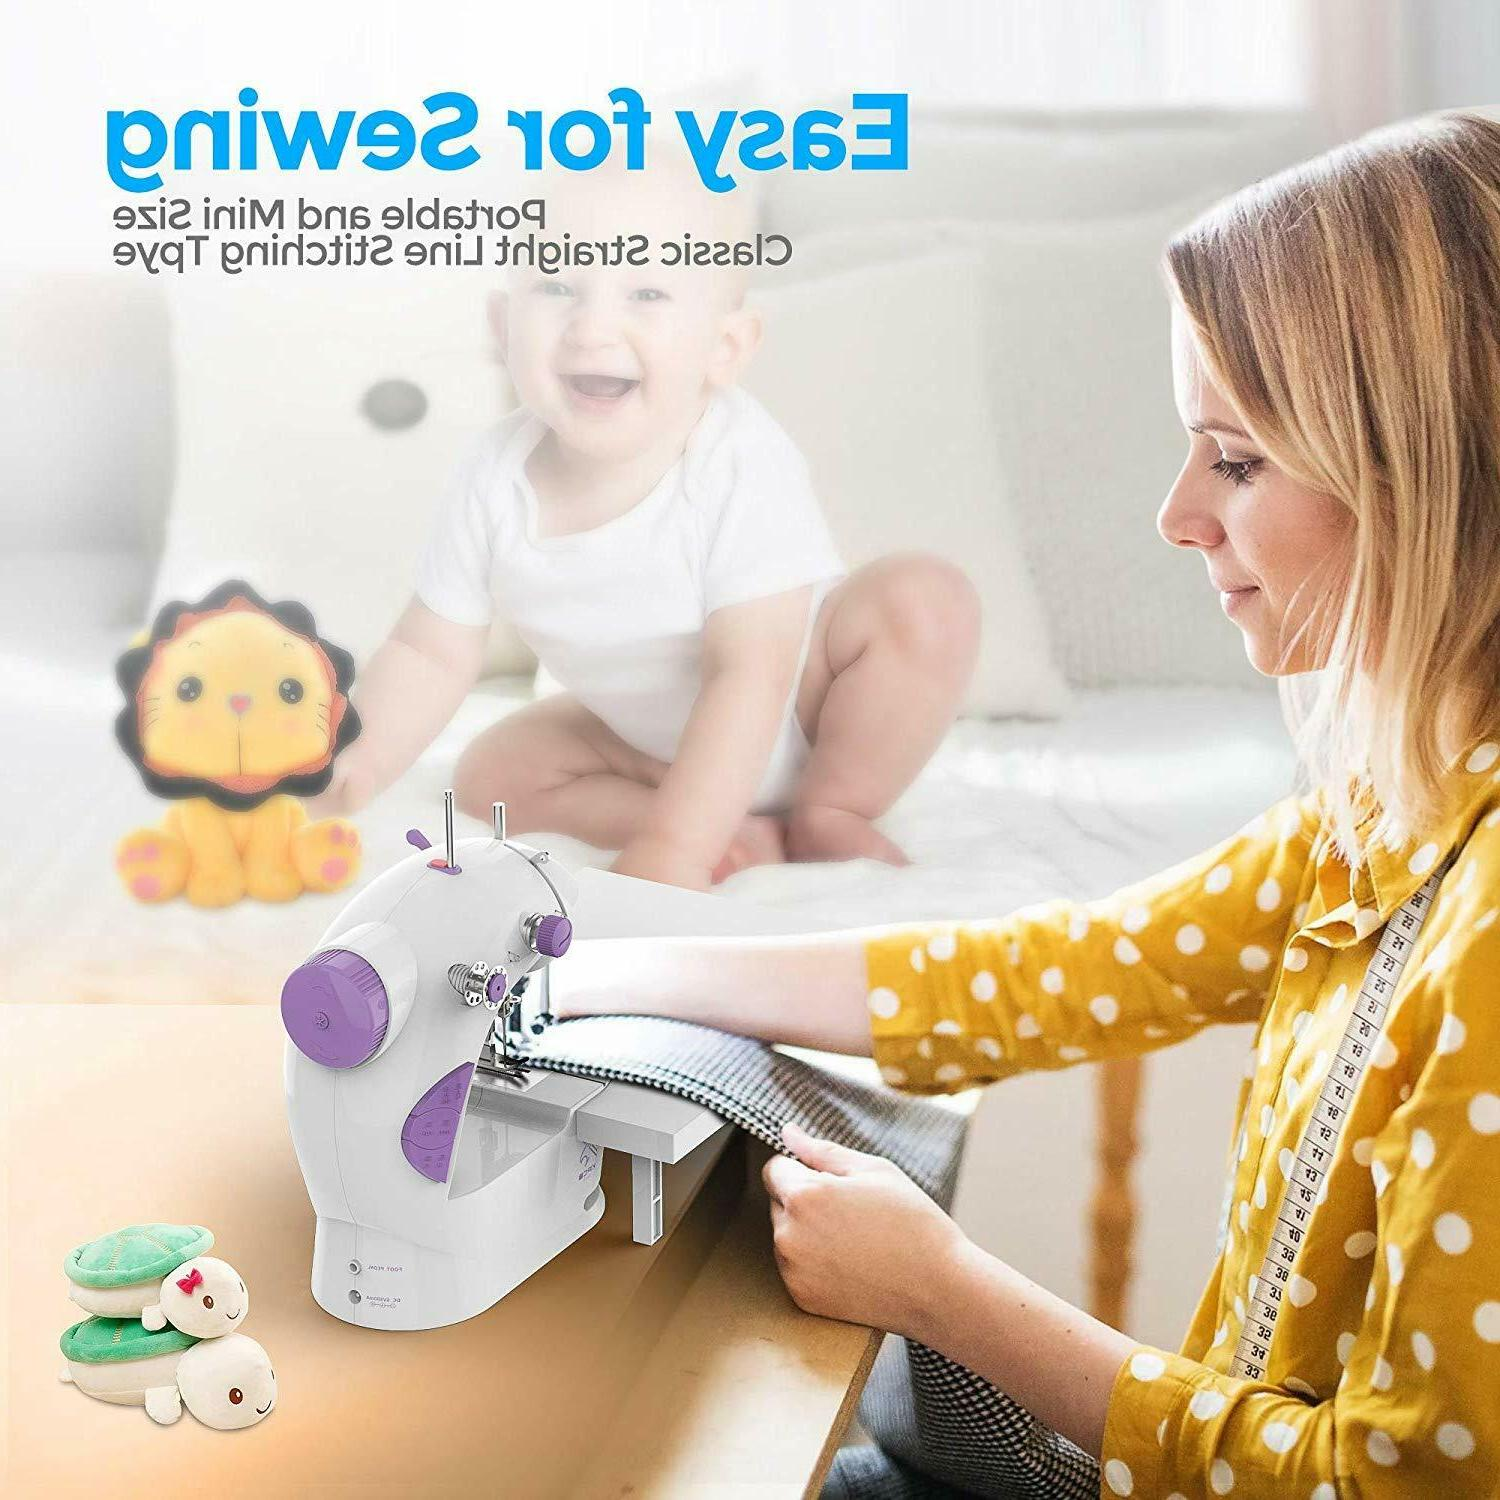 Portable Kids Sewing Machine Mending With Extension